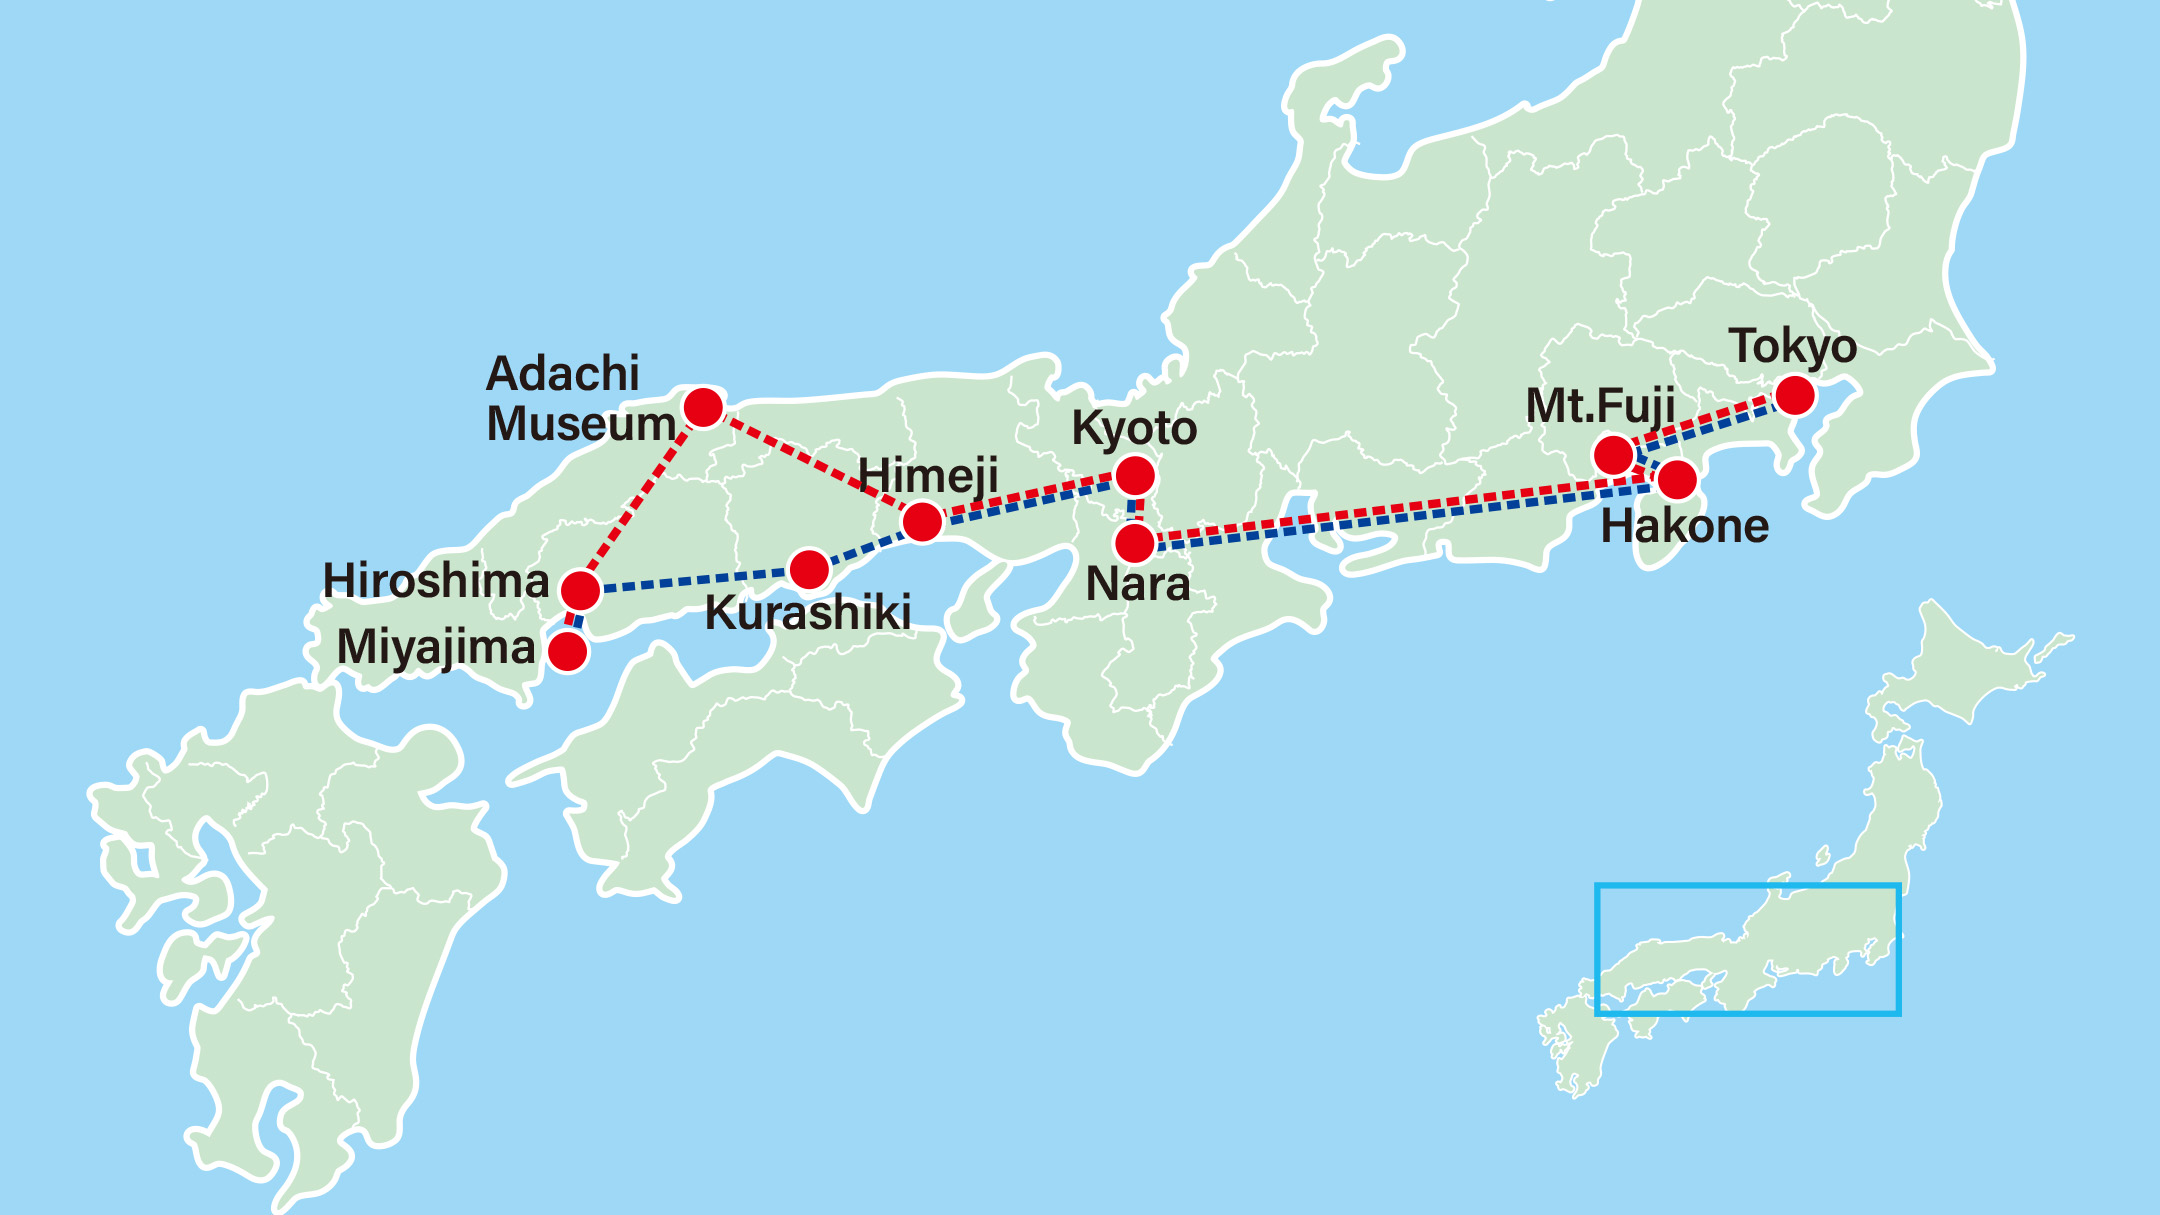 Highlights of Japan | Anime Hiroshima Tour Map